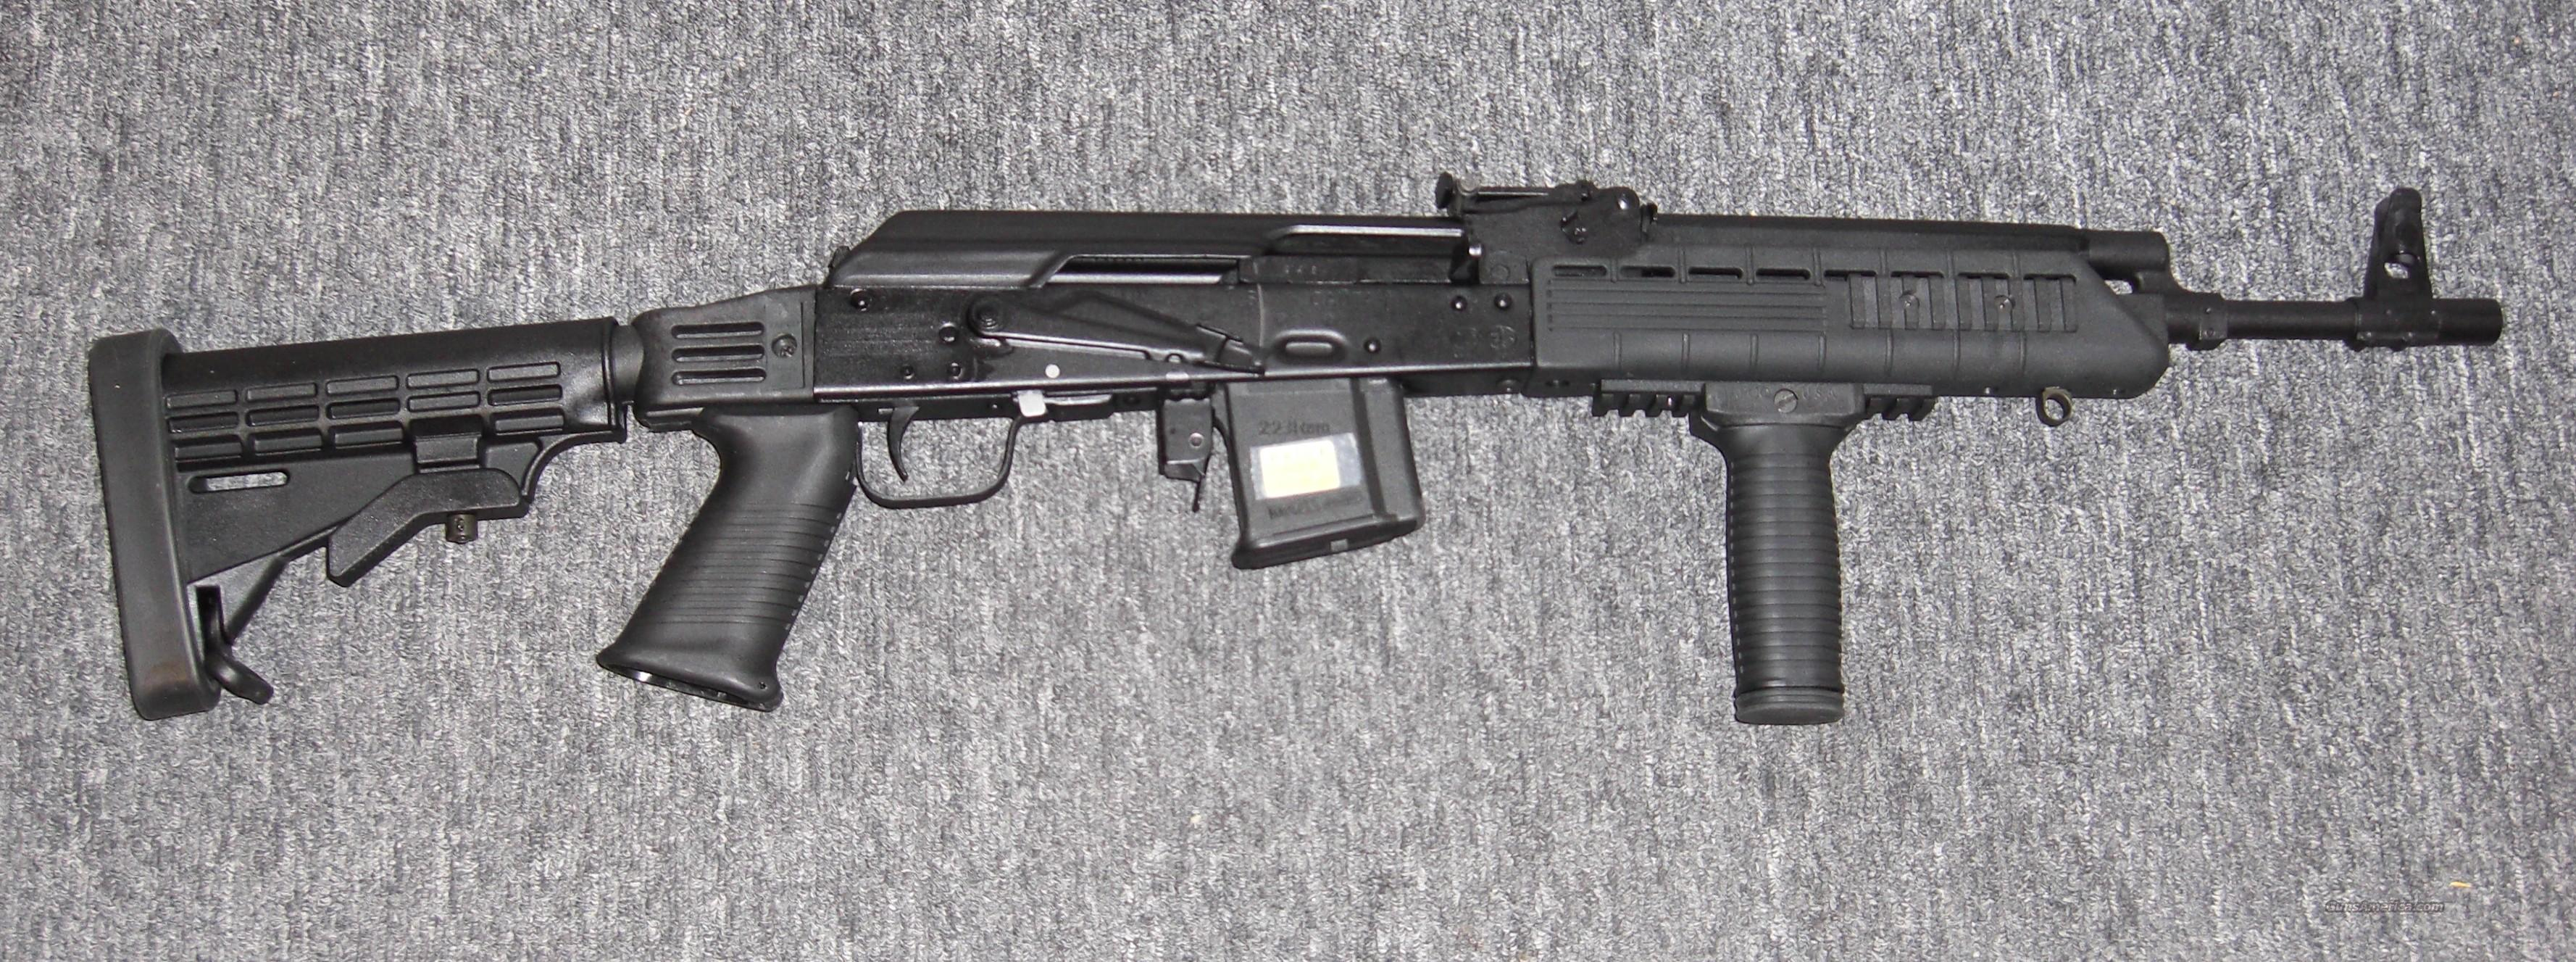 SAIGA 223  w/tri rail, coll. stock  Guns > Rifles > Saiga Rifles